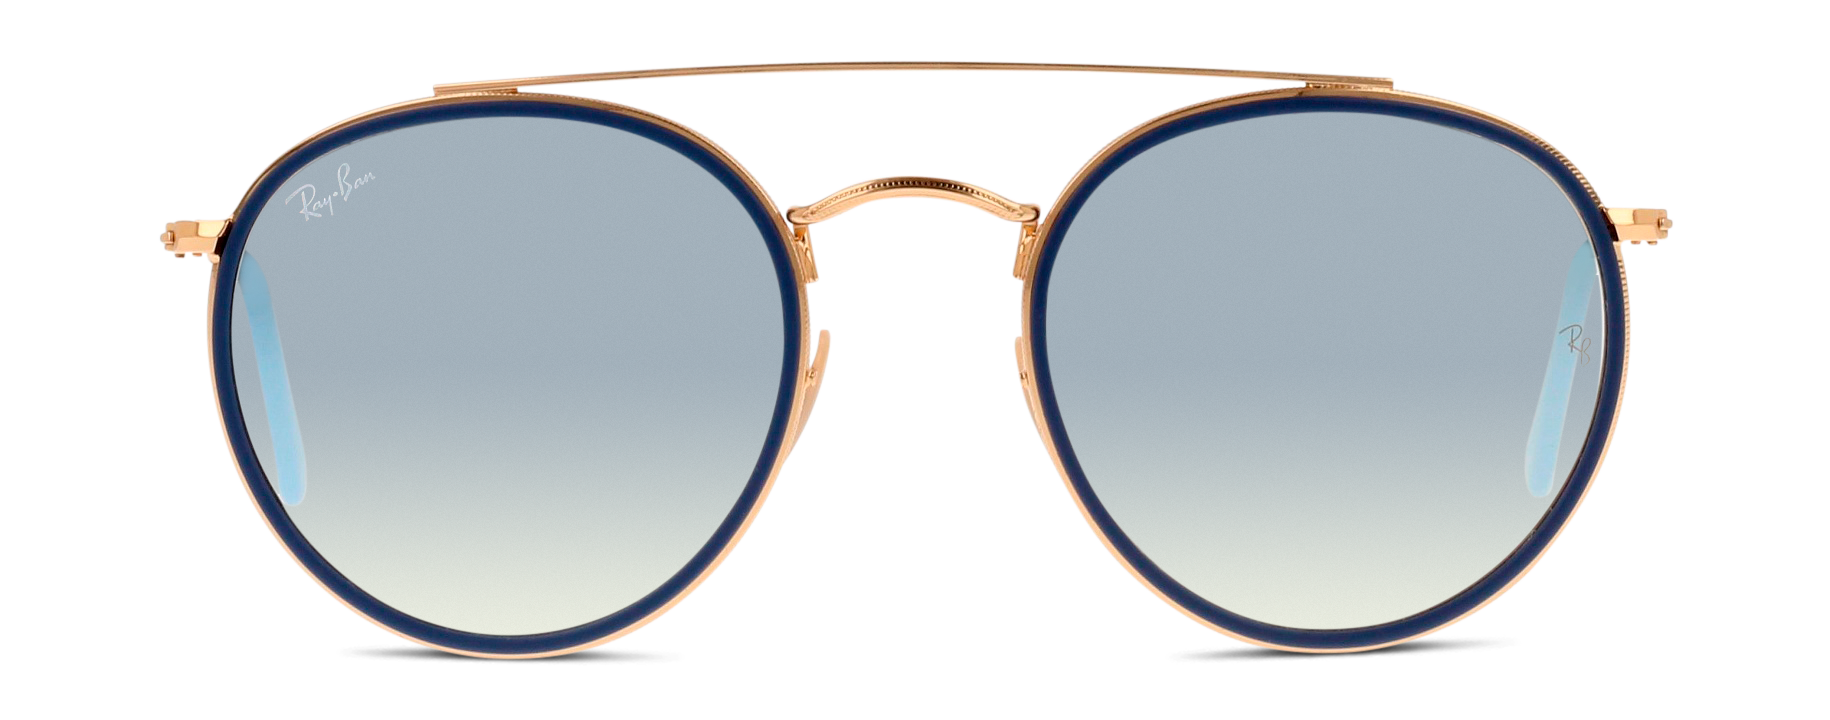 Front Ray-Ban Ray-Ban 3647N 001/ 51/22 Goud, Blauw/Zilver